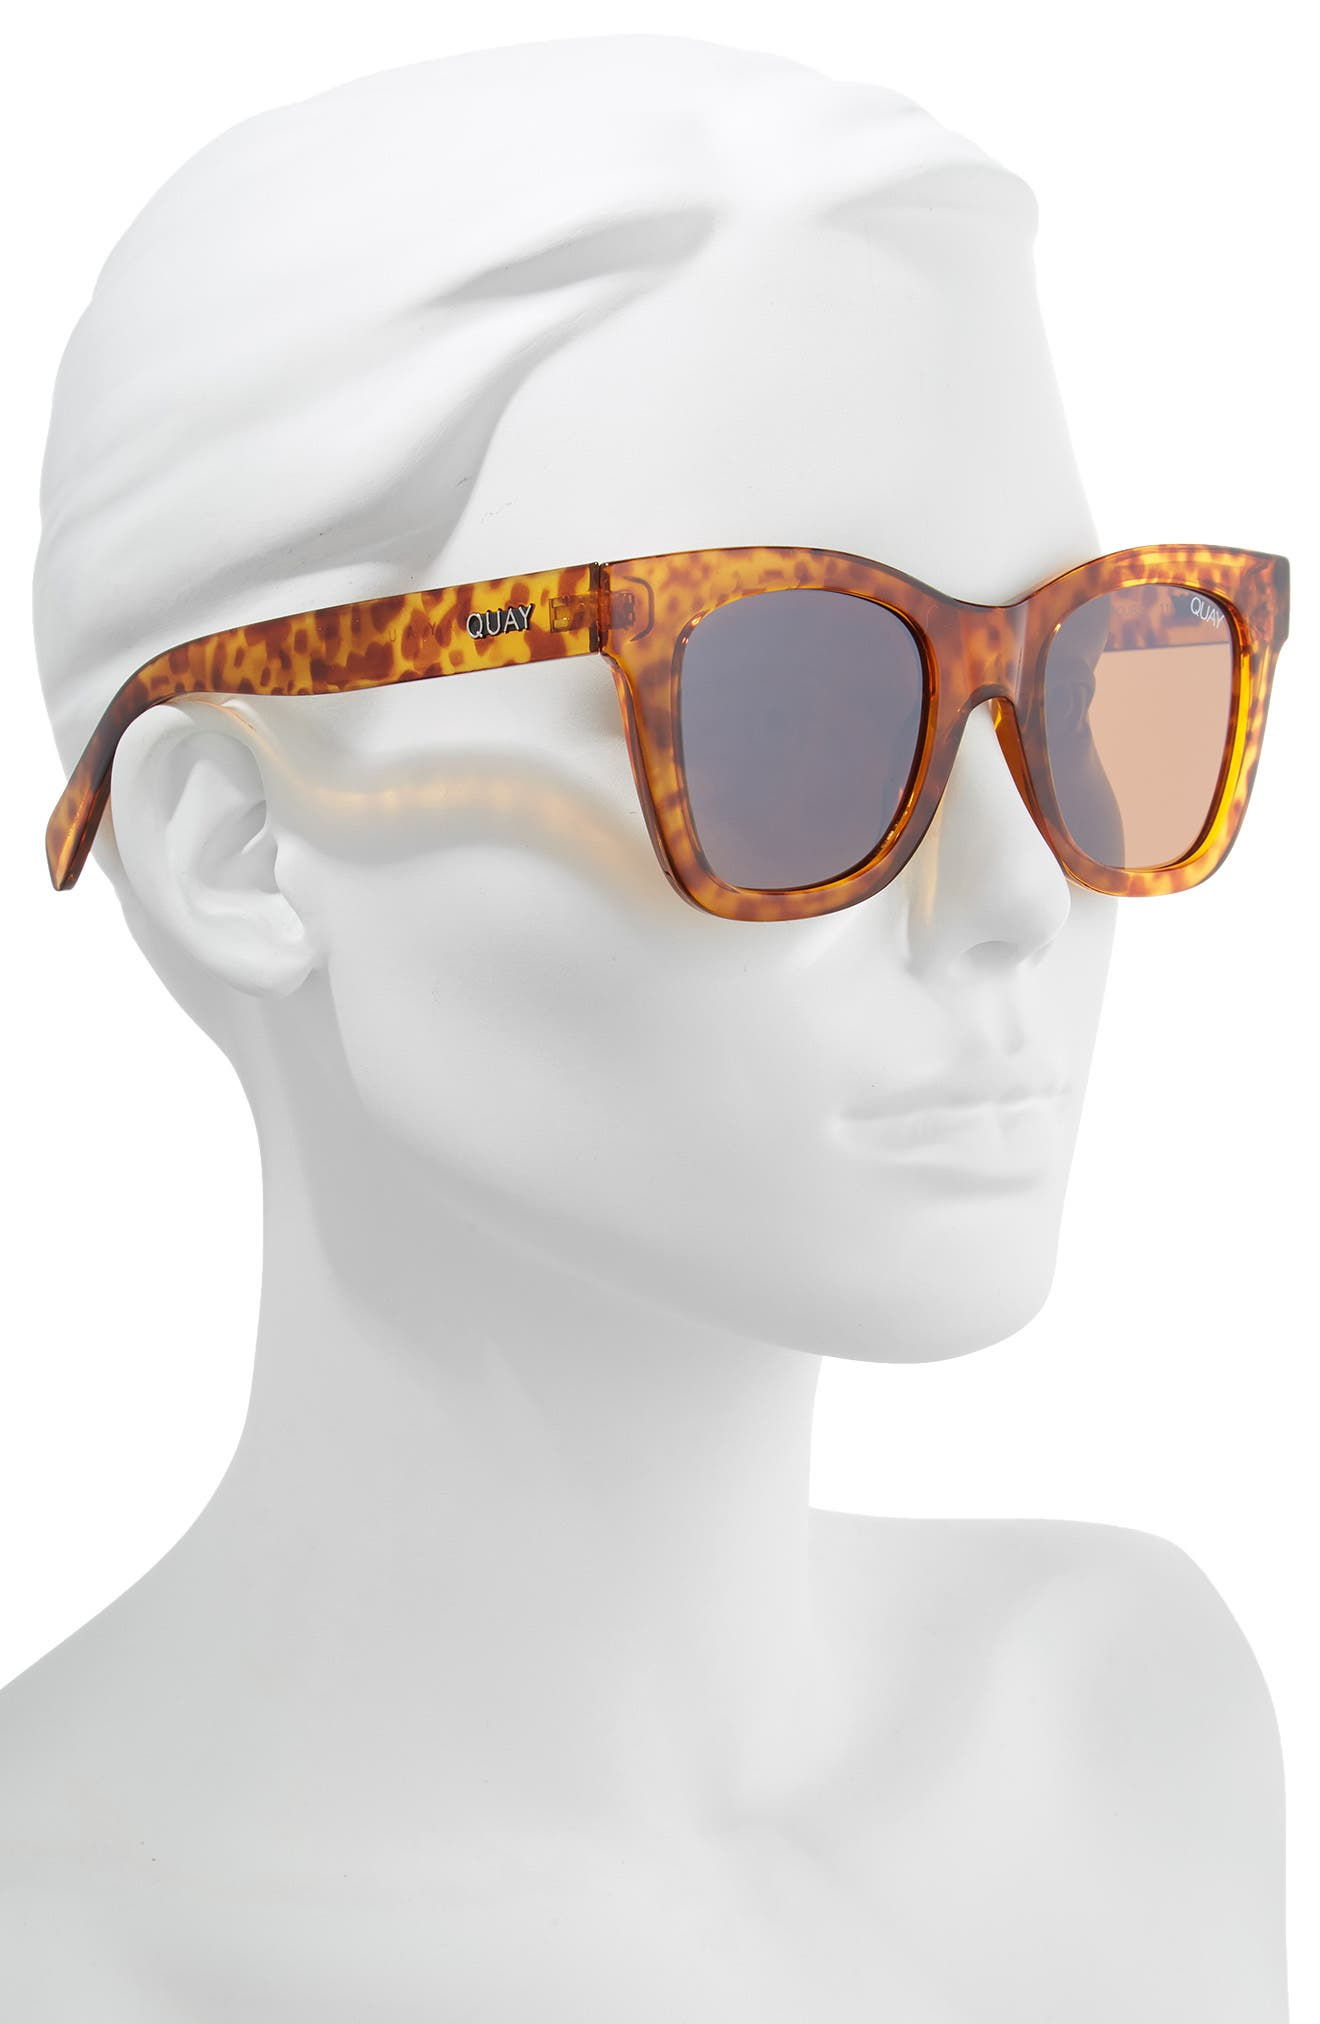 After Hours 50mm Square Sunglasses,                             Alternate thumbnail 2, color,                             ORANGE TORT / BROWN